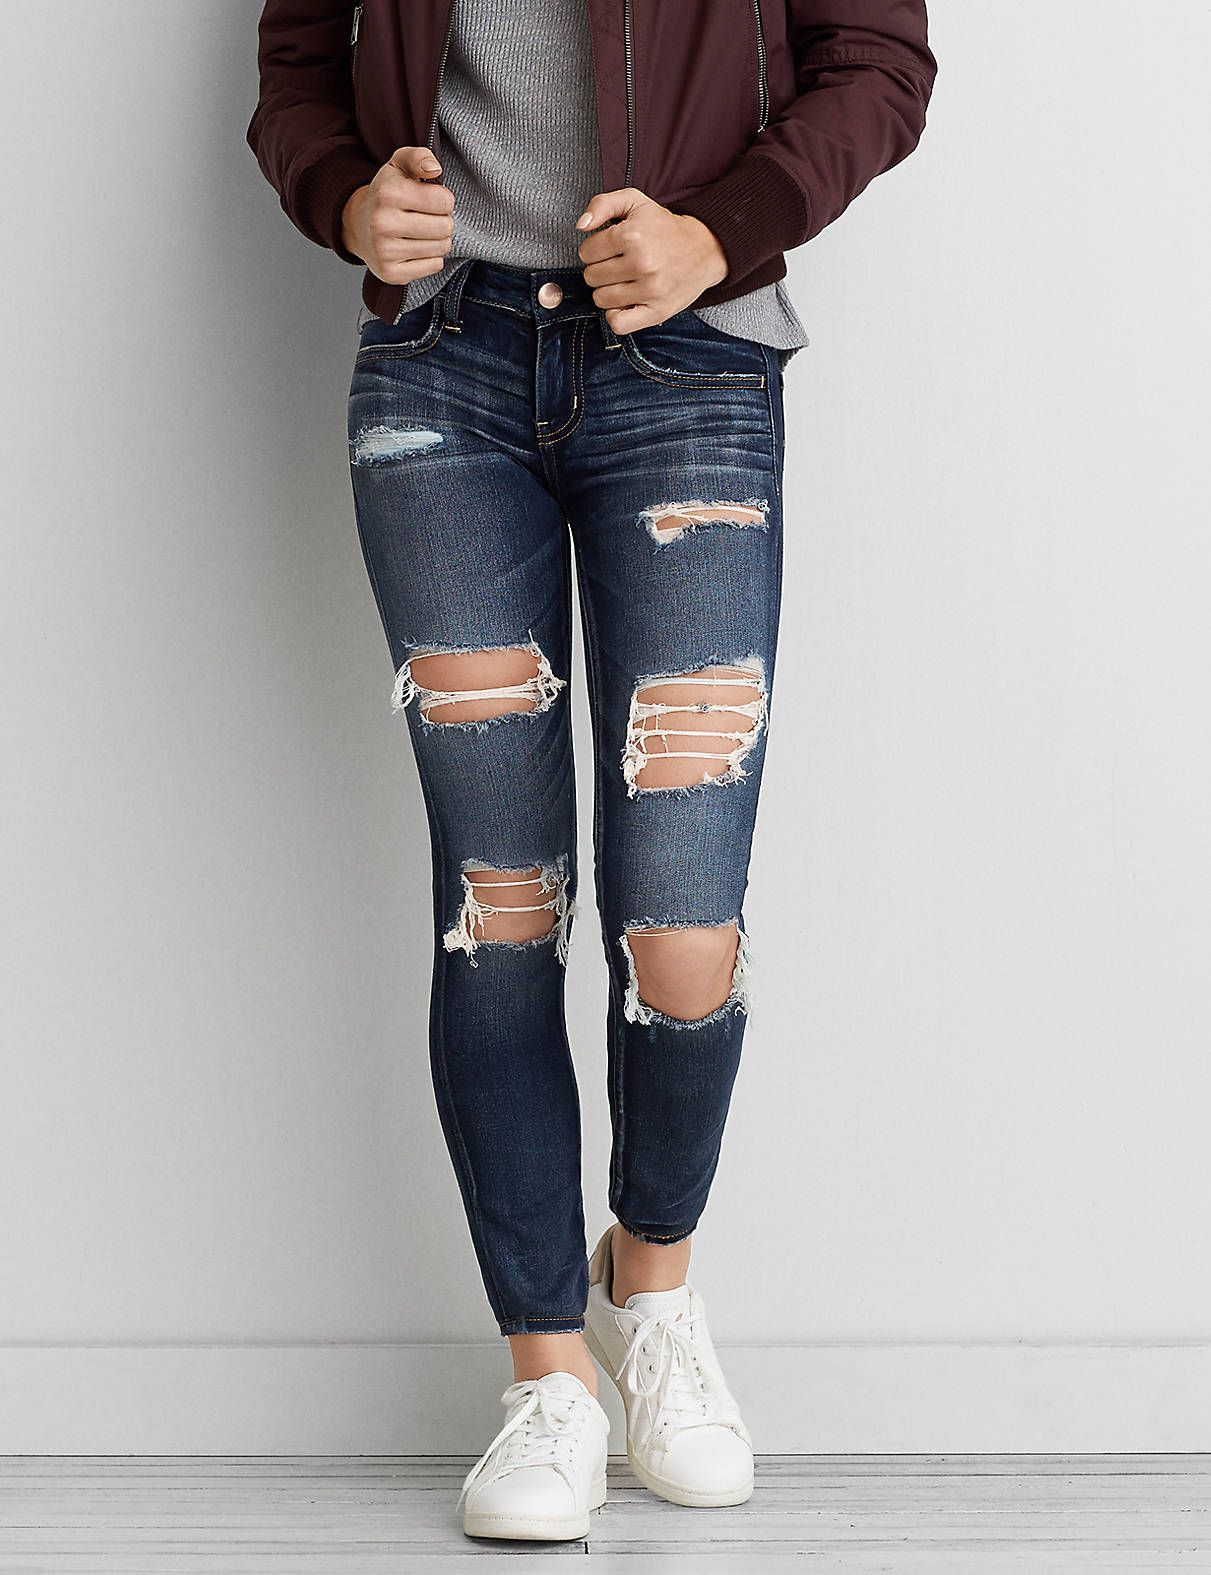 a847fd18e8e American eagle jeans are my favorite jeans ever they fit so nicely ...